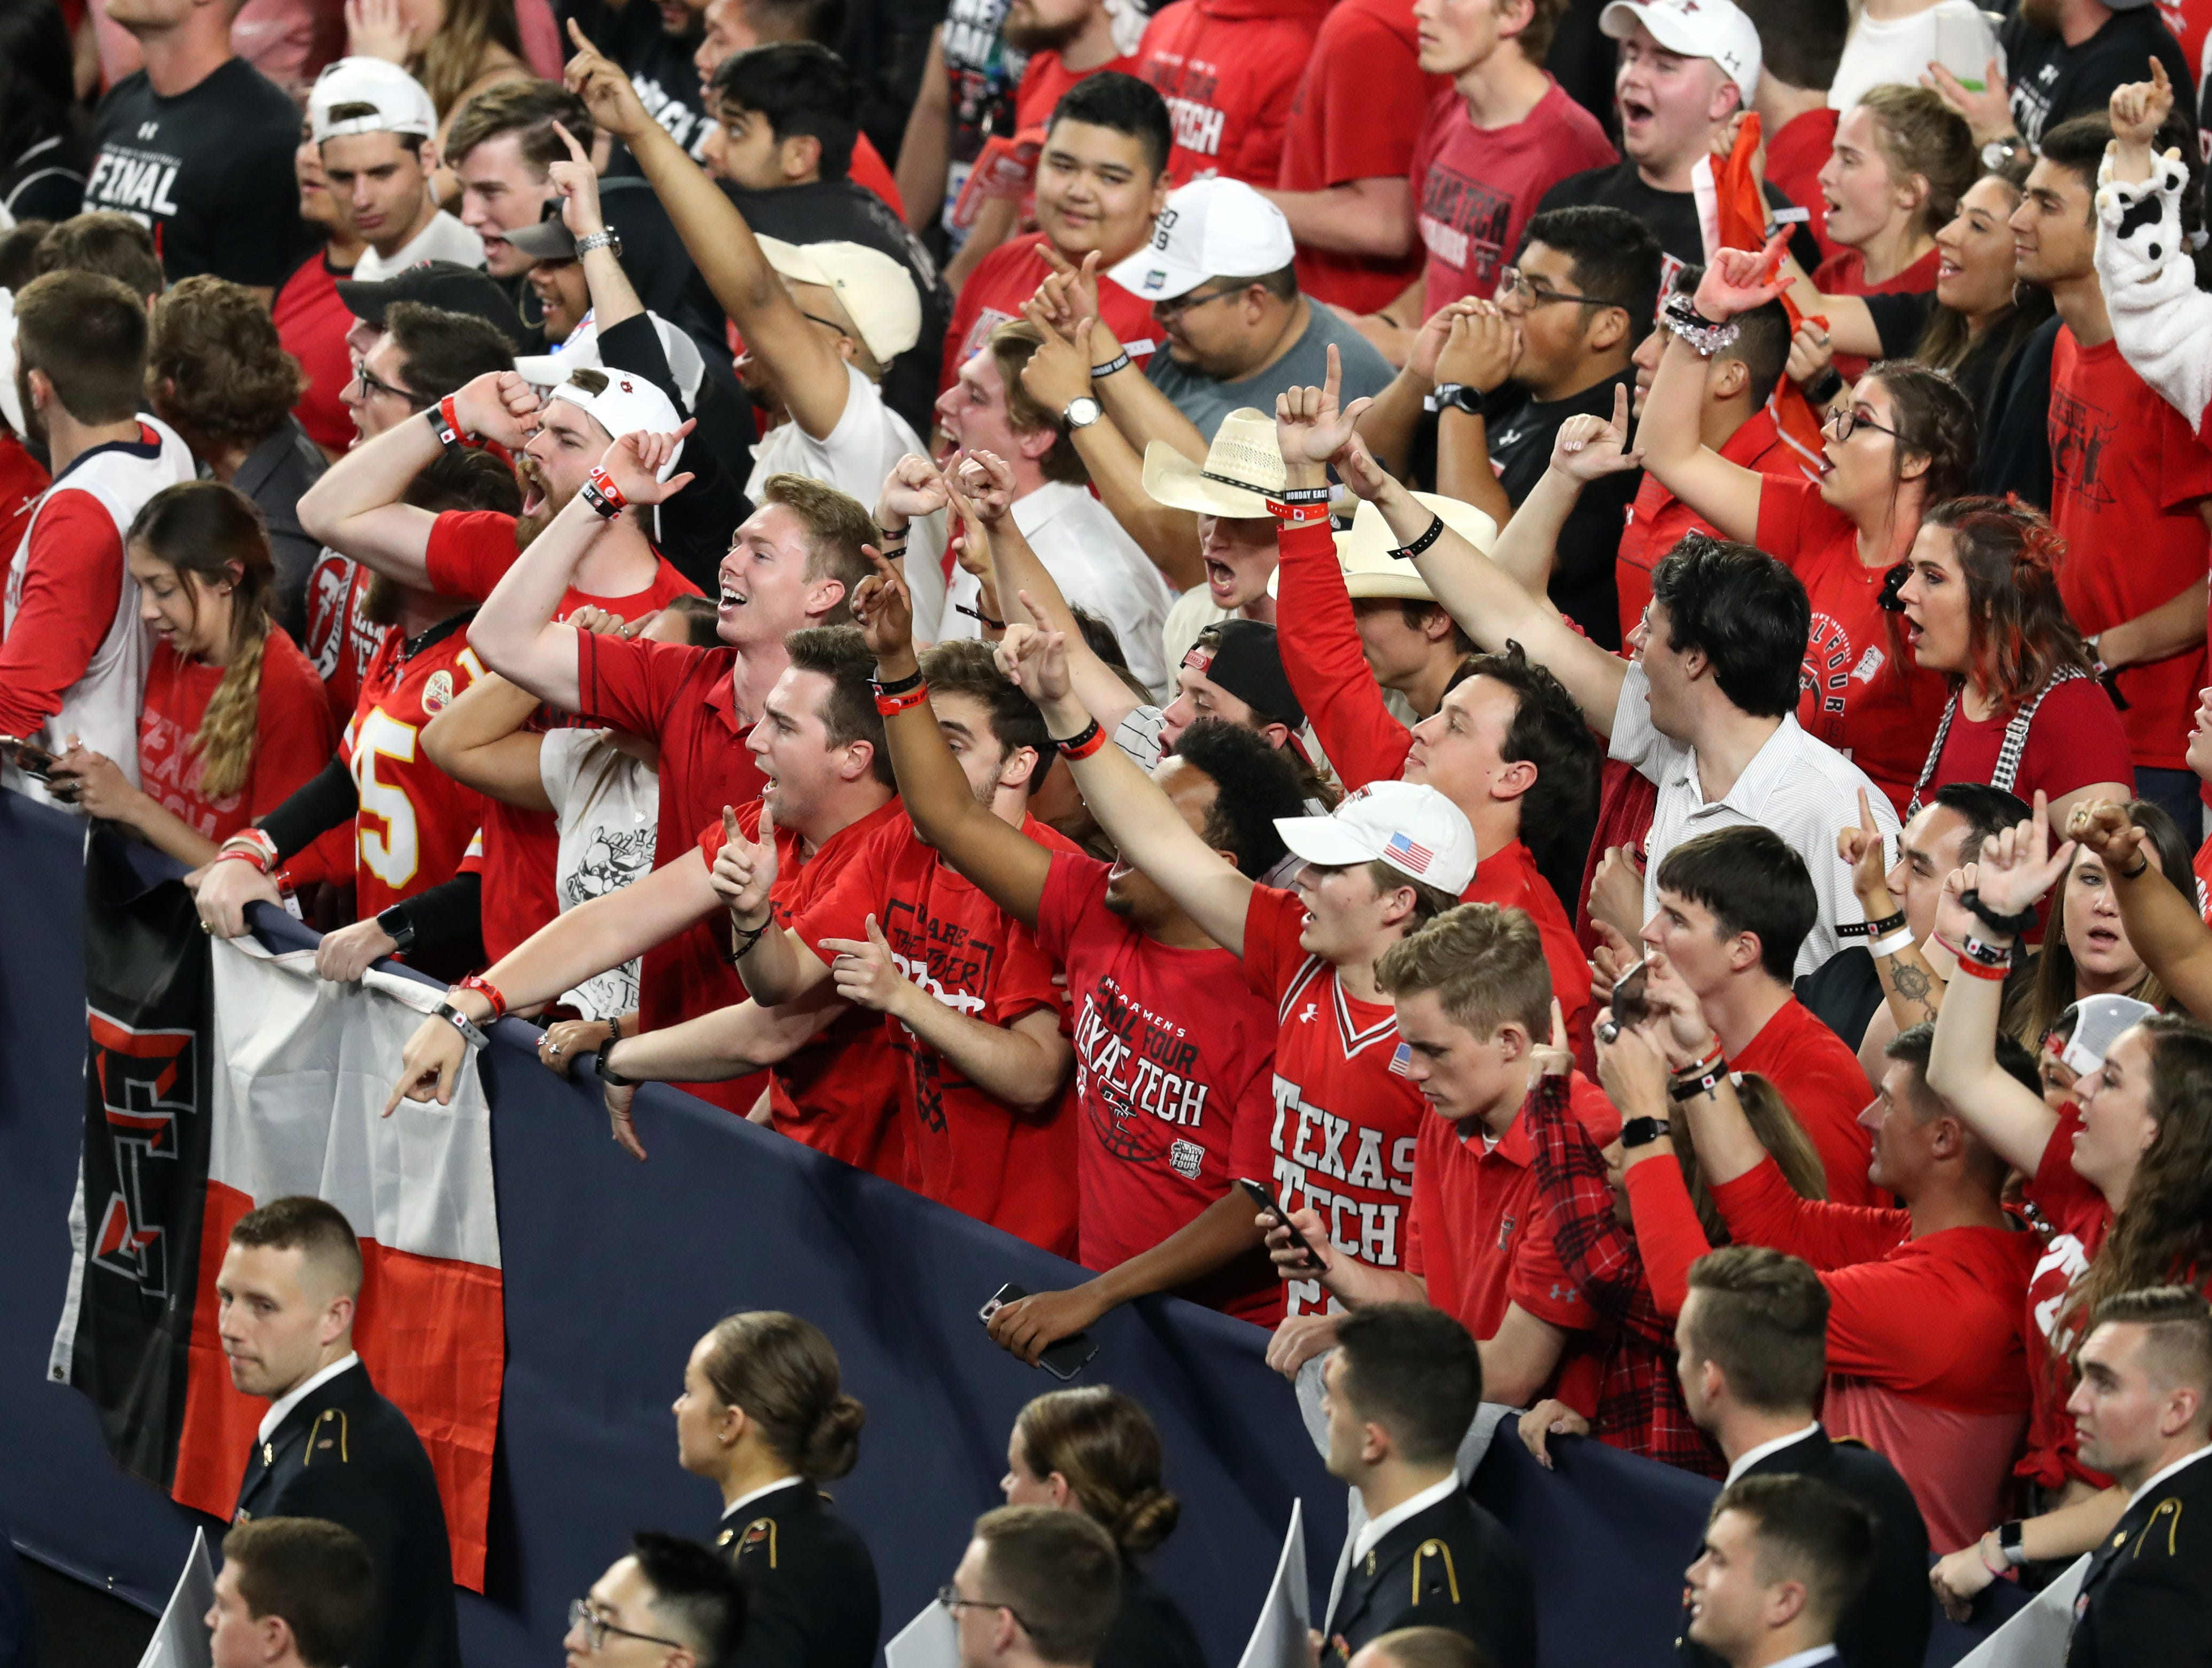 Apr 8, 2019; Minneapolis, MN, USA; Texas Tech Red Raiders fans cheer before the championship game of the 2019 men's Final Four against the Virginia Cavaliers at US Bank Stadium. Mandatory Credit: Brace Hemmelgarn-USA TODAY Sports